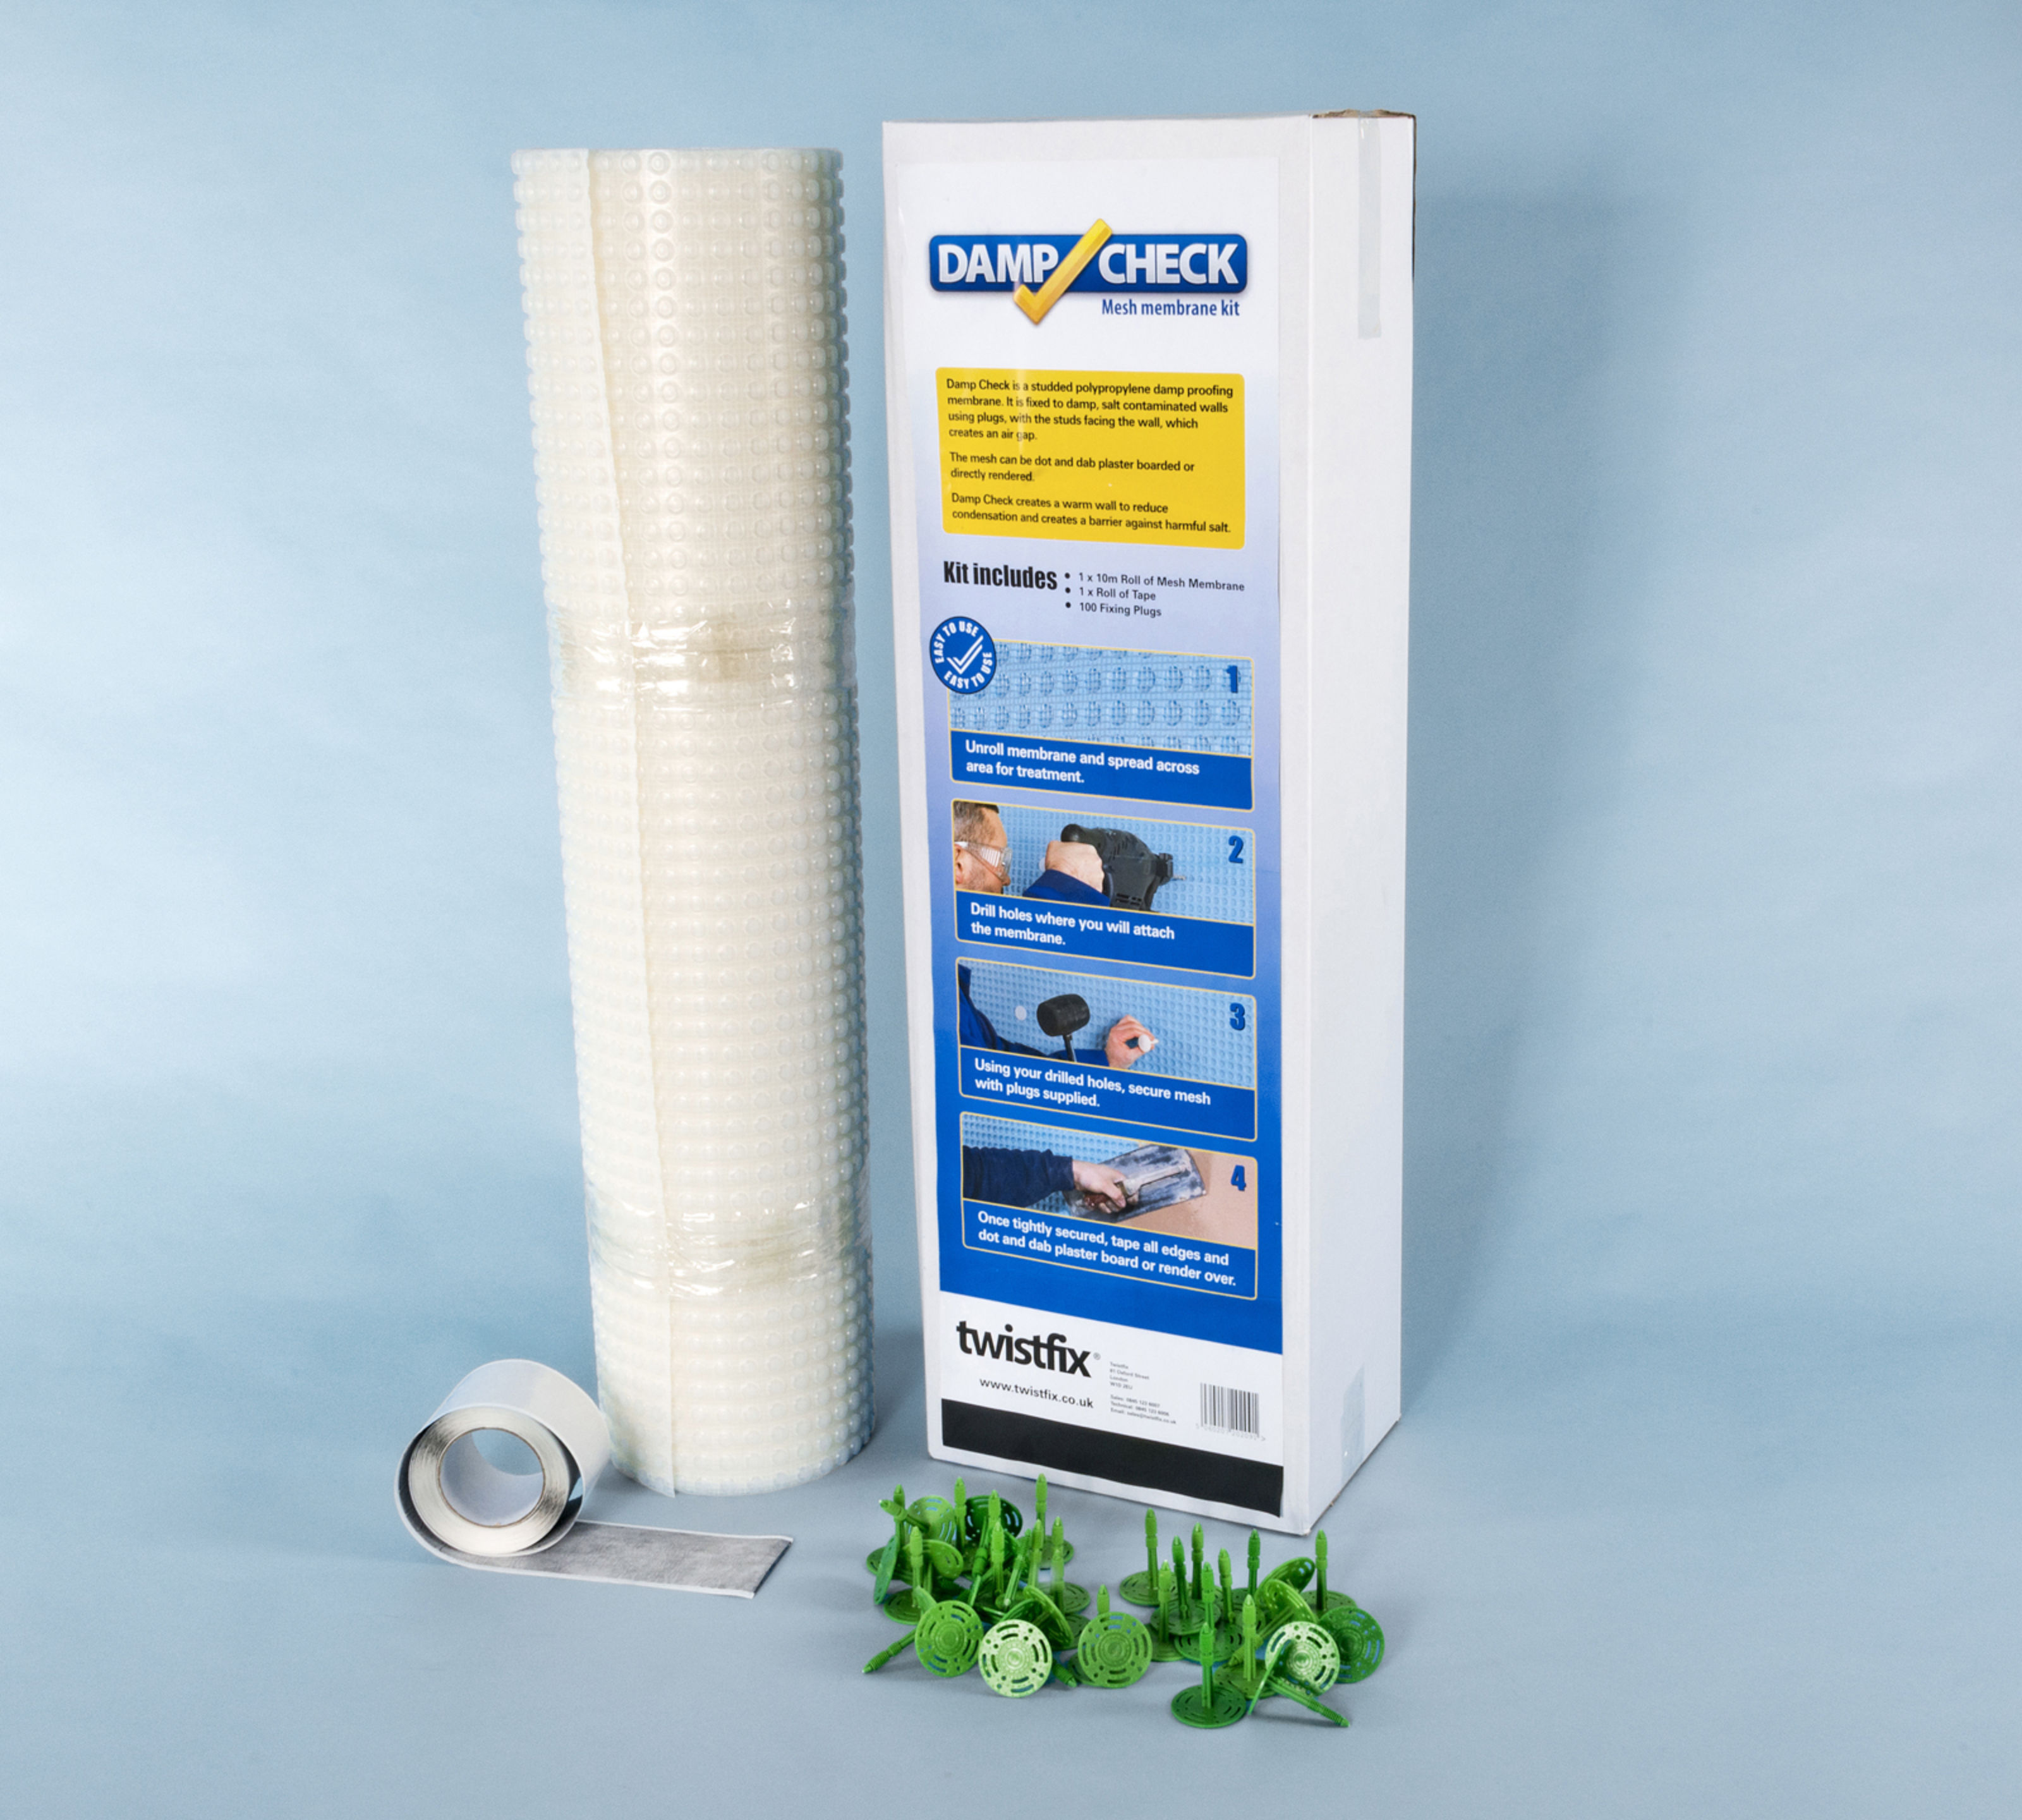 Damp Check – Mesh Membrane Kit